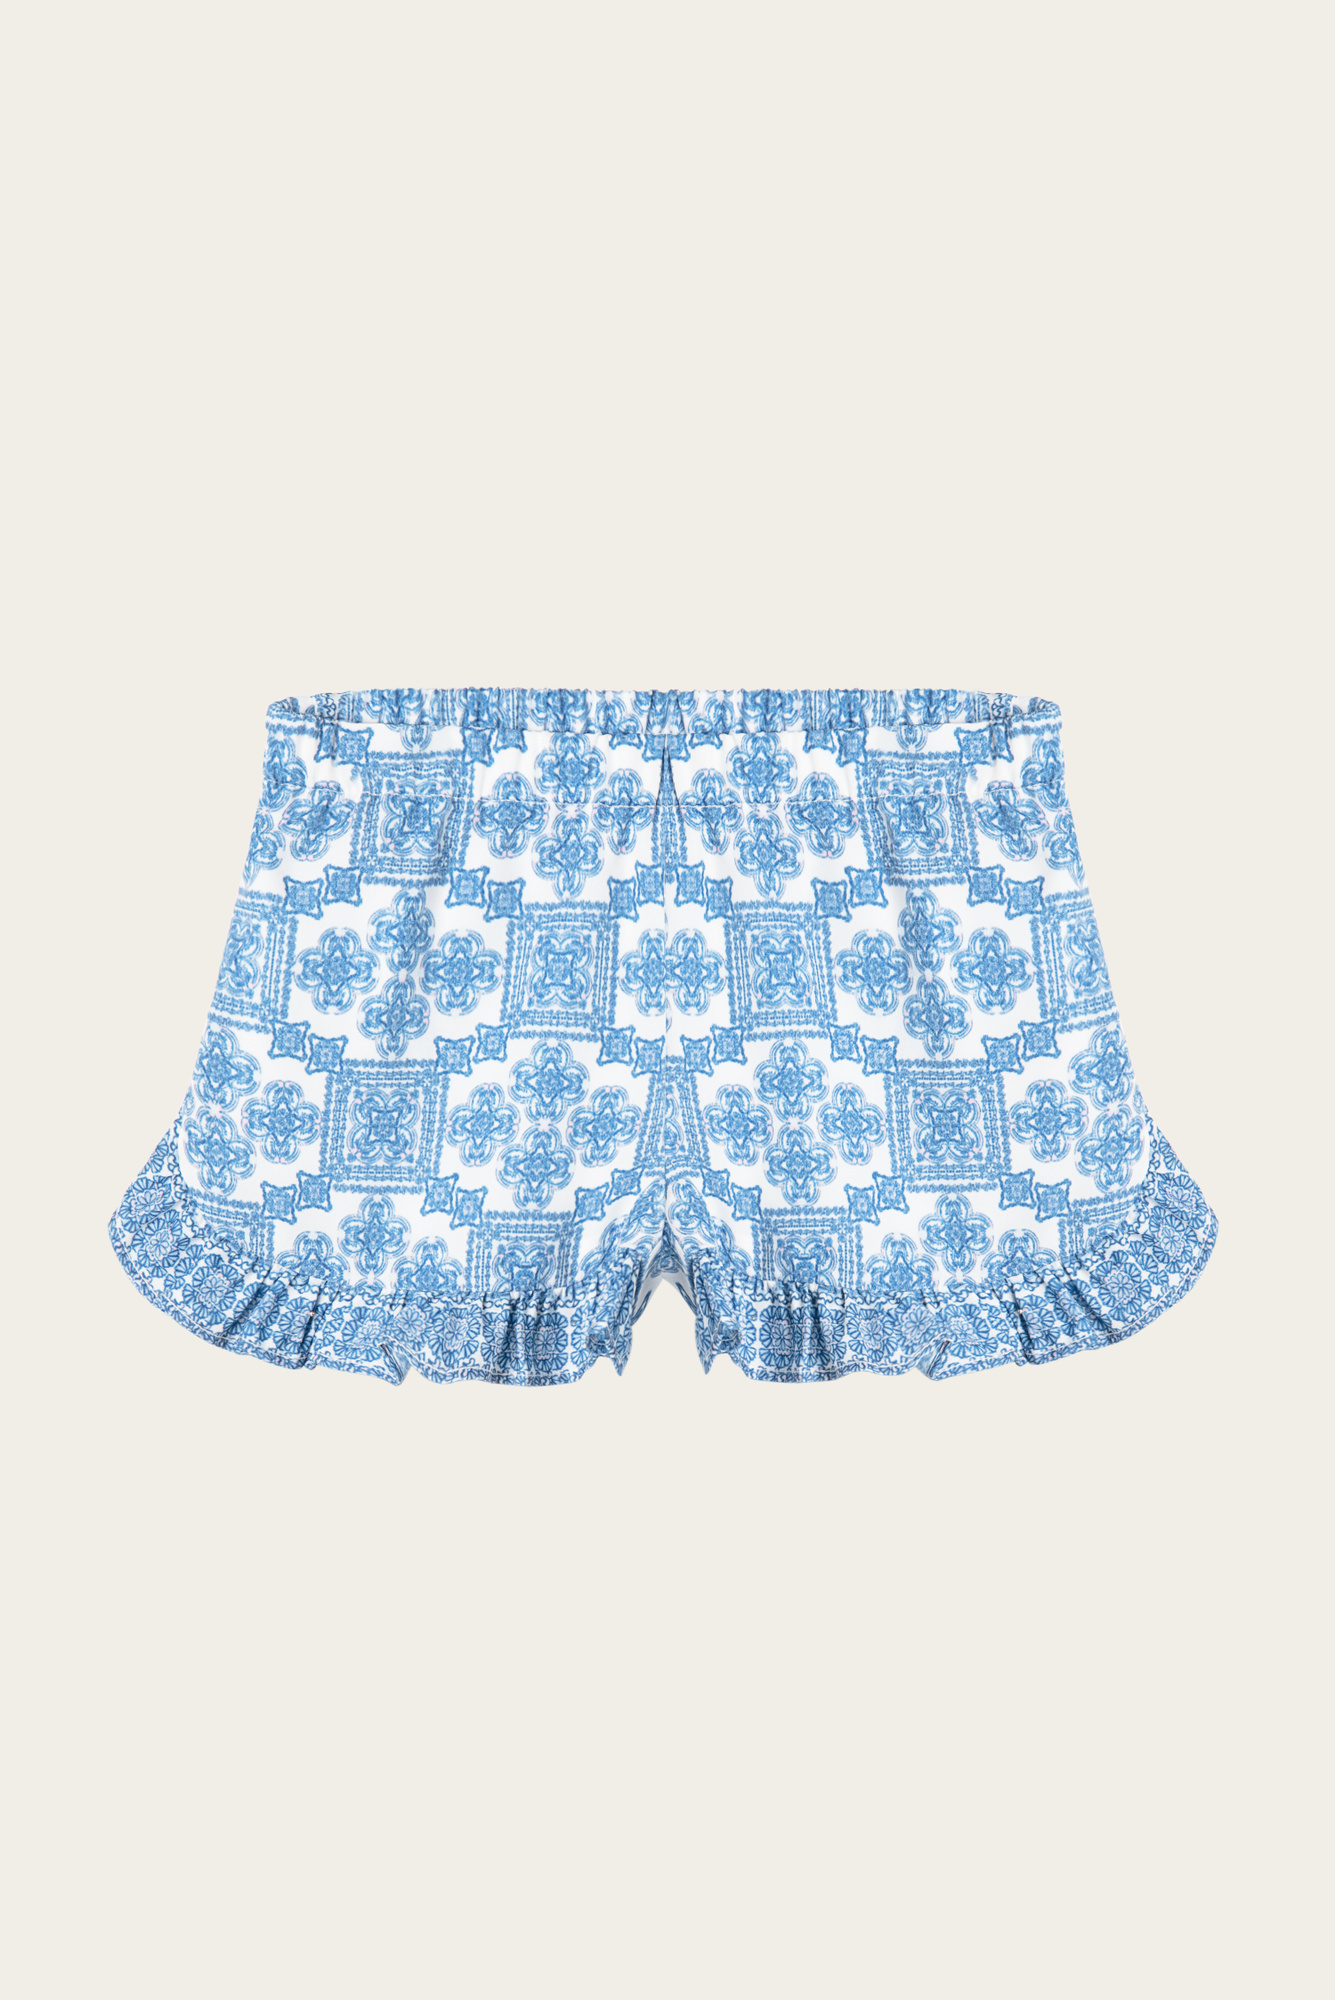 1159_5eeb736bd2-mini-leona-shorts-ocean-breeze-by-malina-1-big.jpg